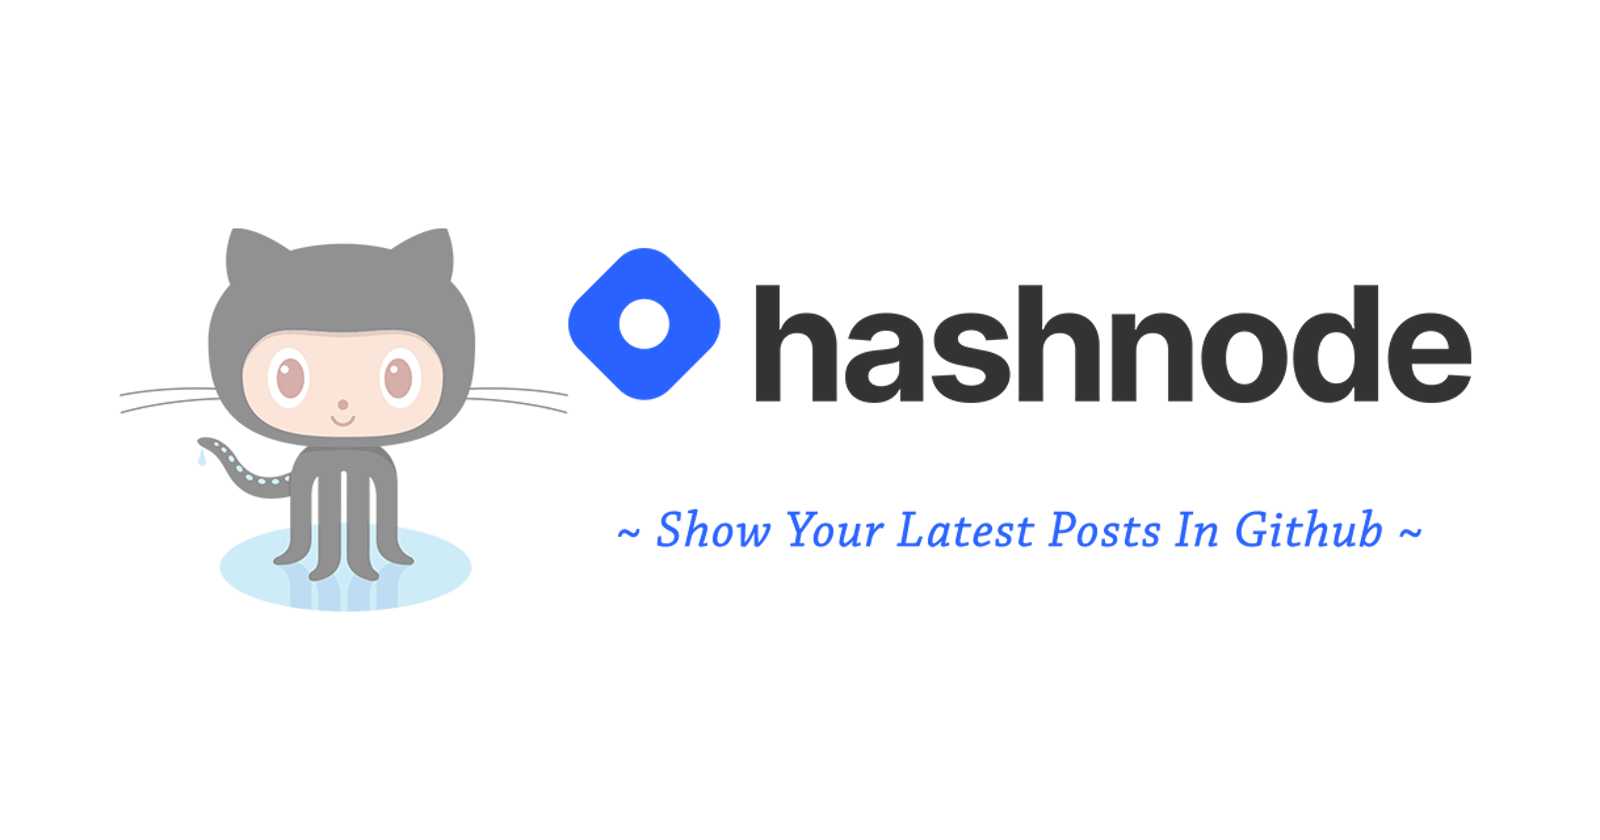 How To Show Latest Hashnode Blog Posts In Github Profile Readme?